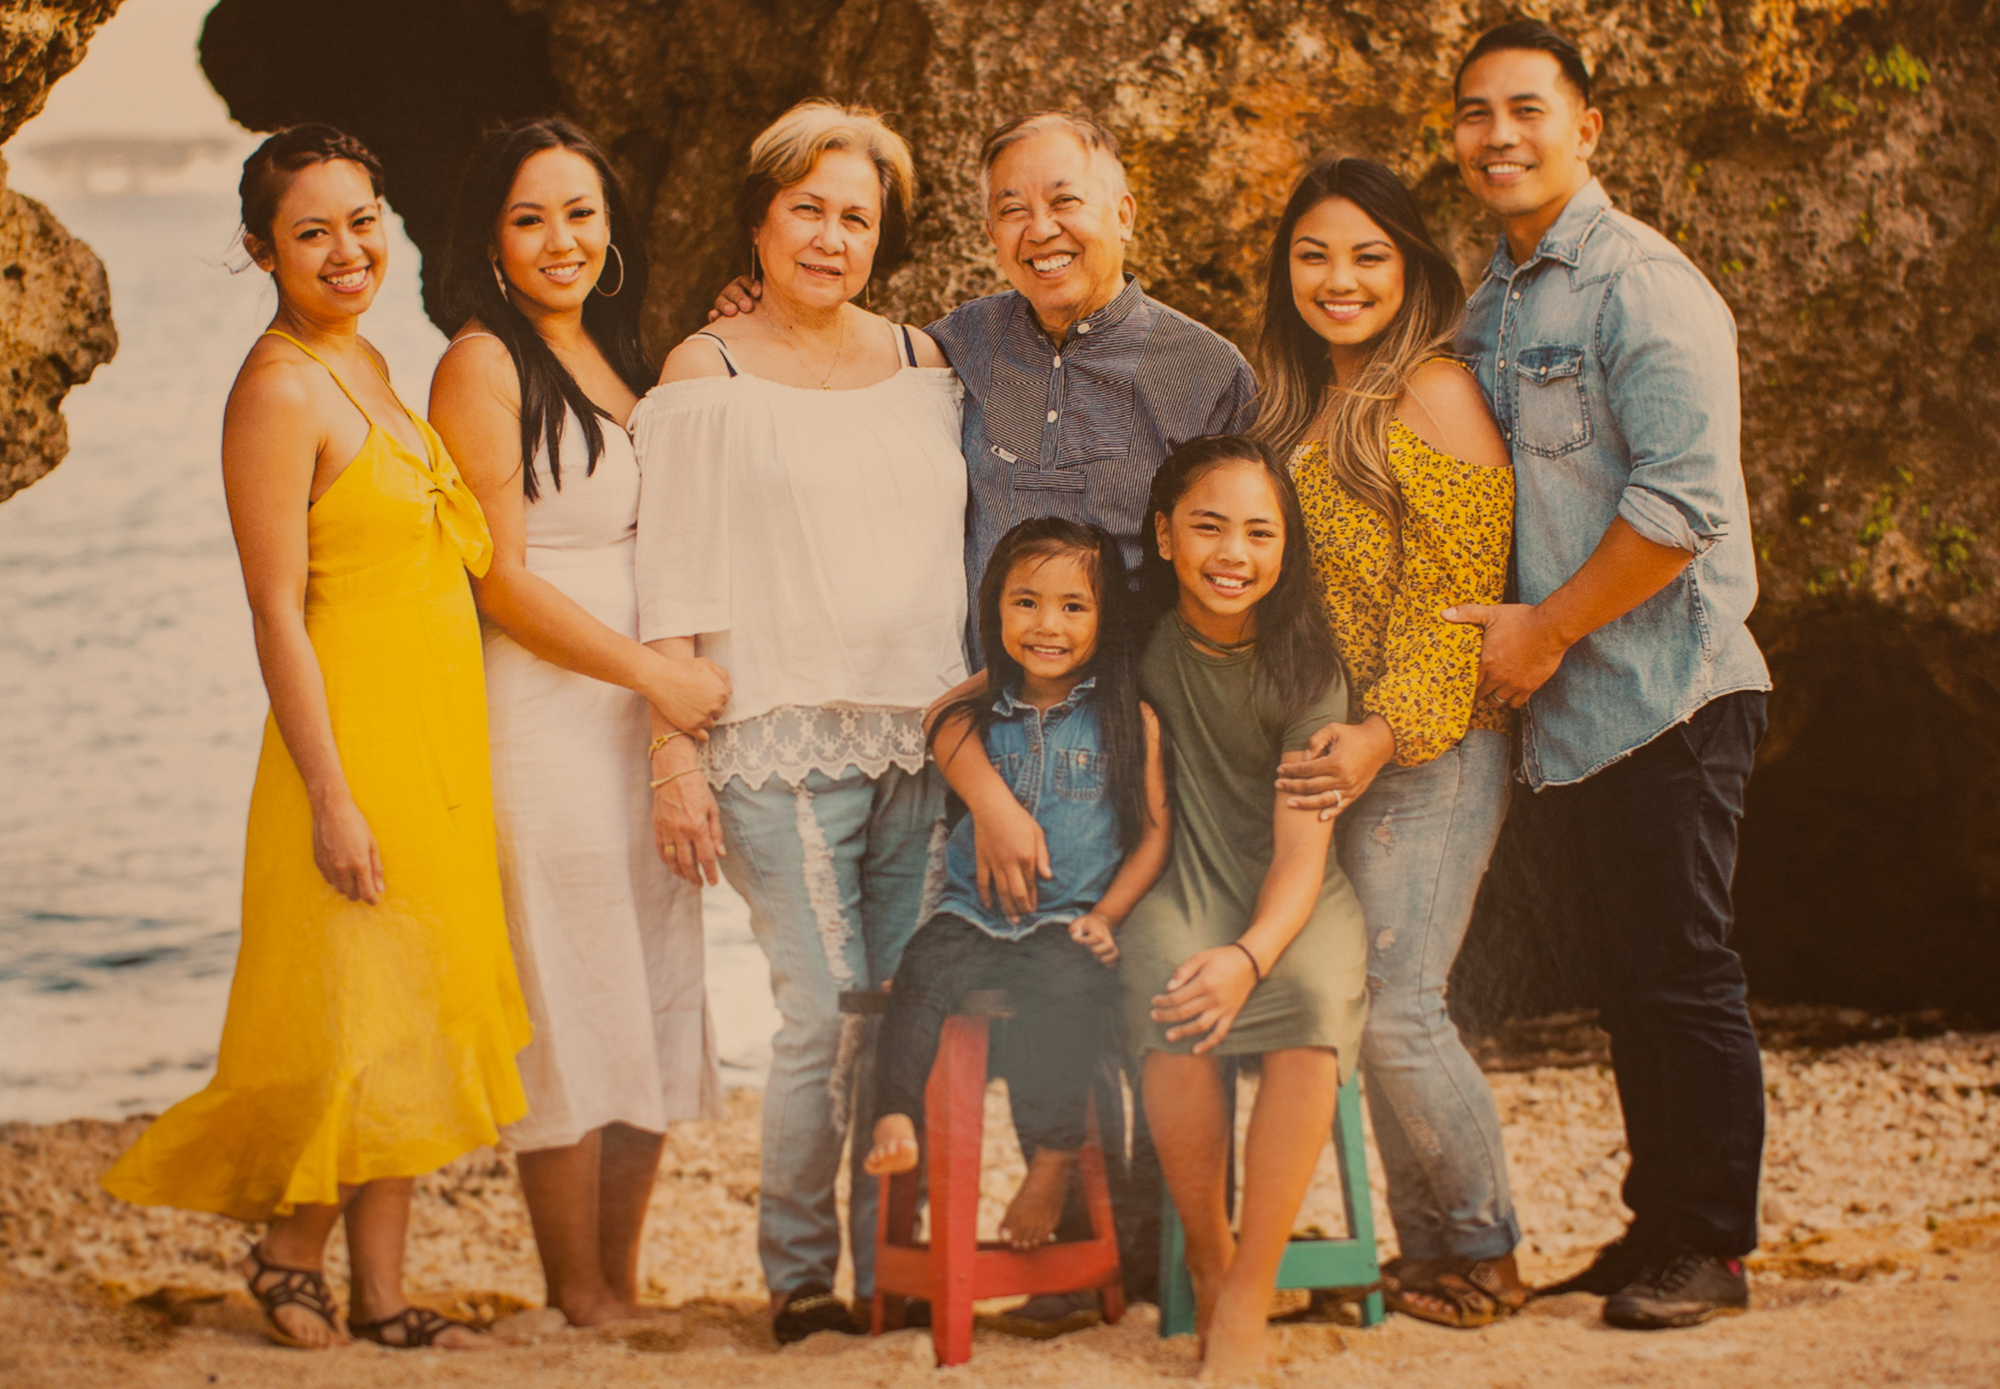 A family photo at the home of Manolo Guerra in Moreno Valley, California, Wednesday, Aug. 7, 2019. (Photo/ Kat Kaye)